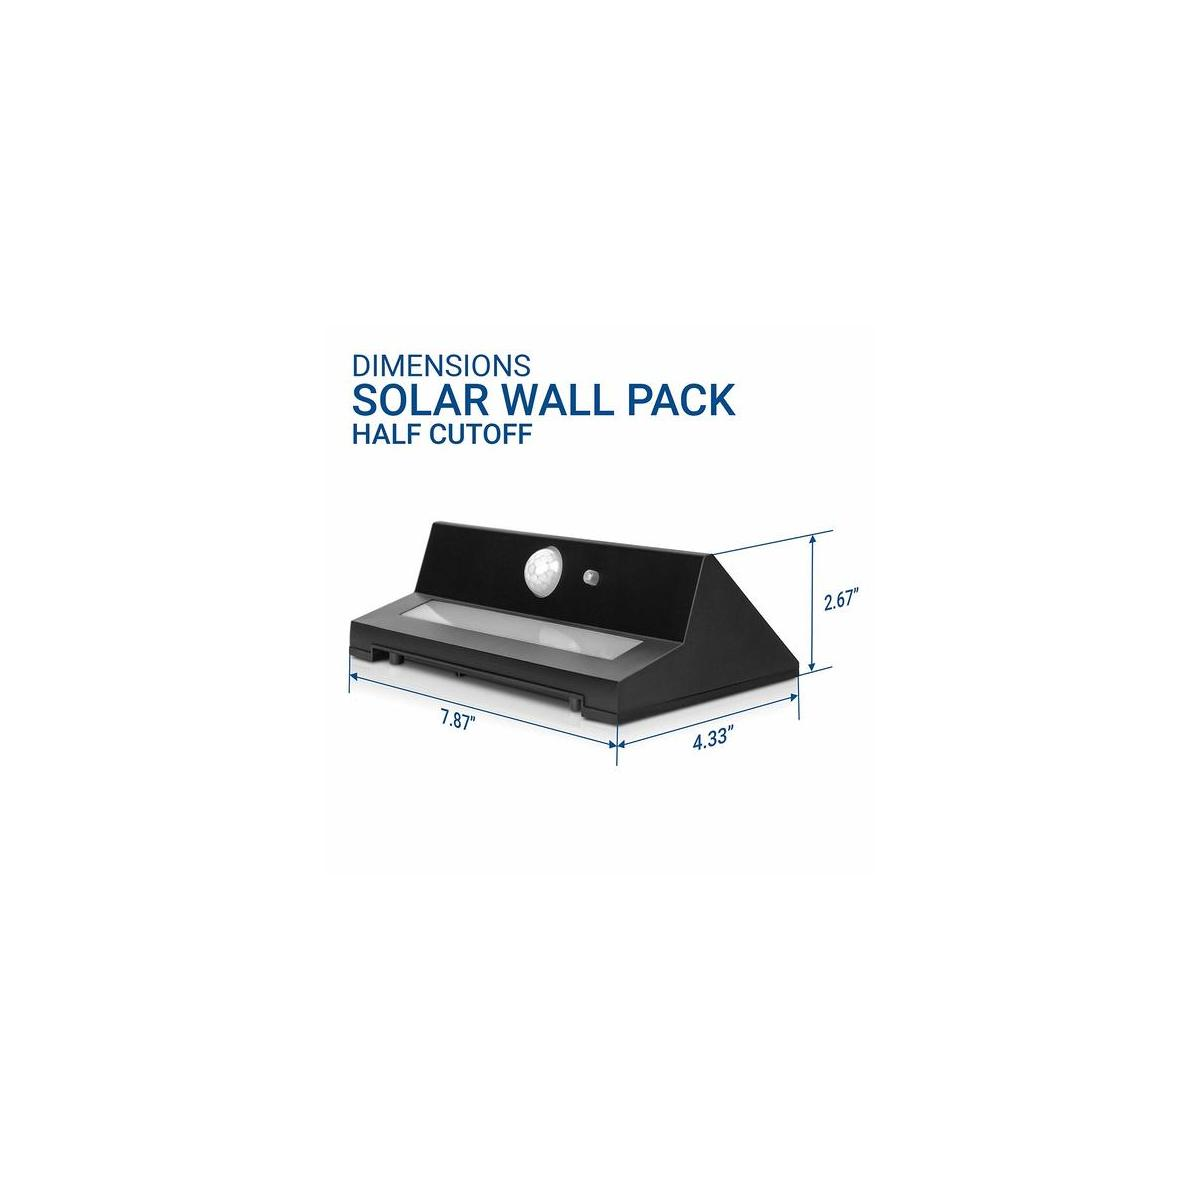 Solar Wall Lights Outdoor - LED Photocell -  For Garage, Yard, Driveway, Patio - 2 Pack